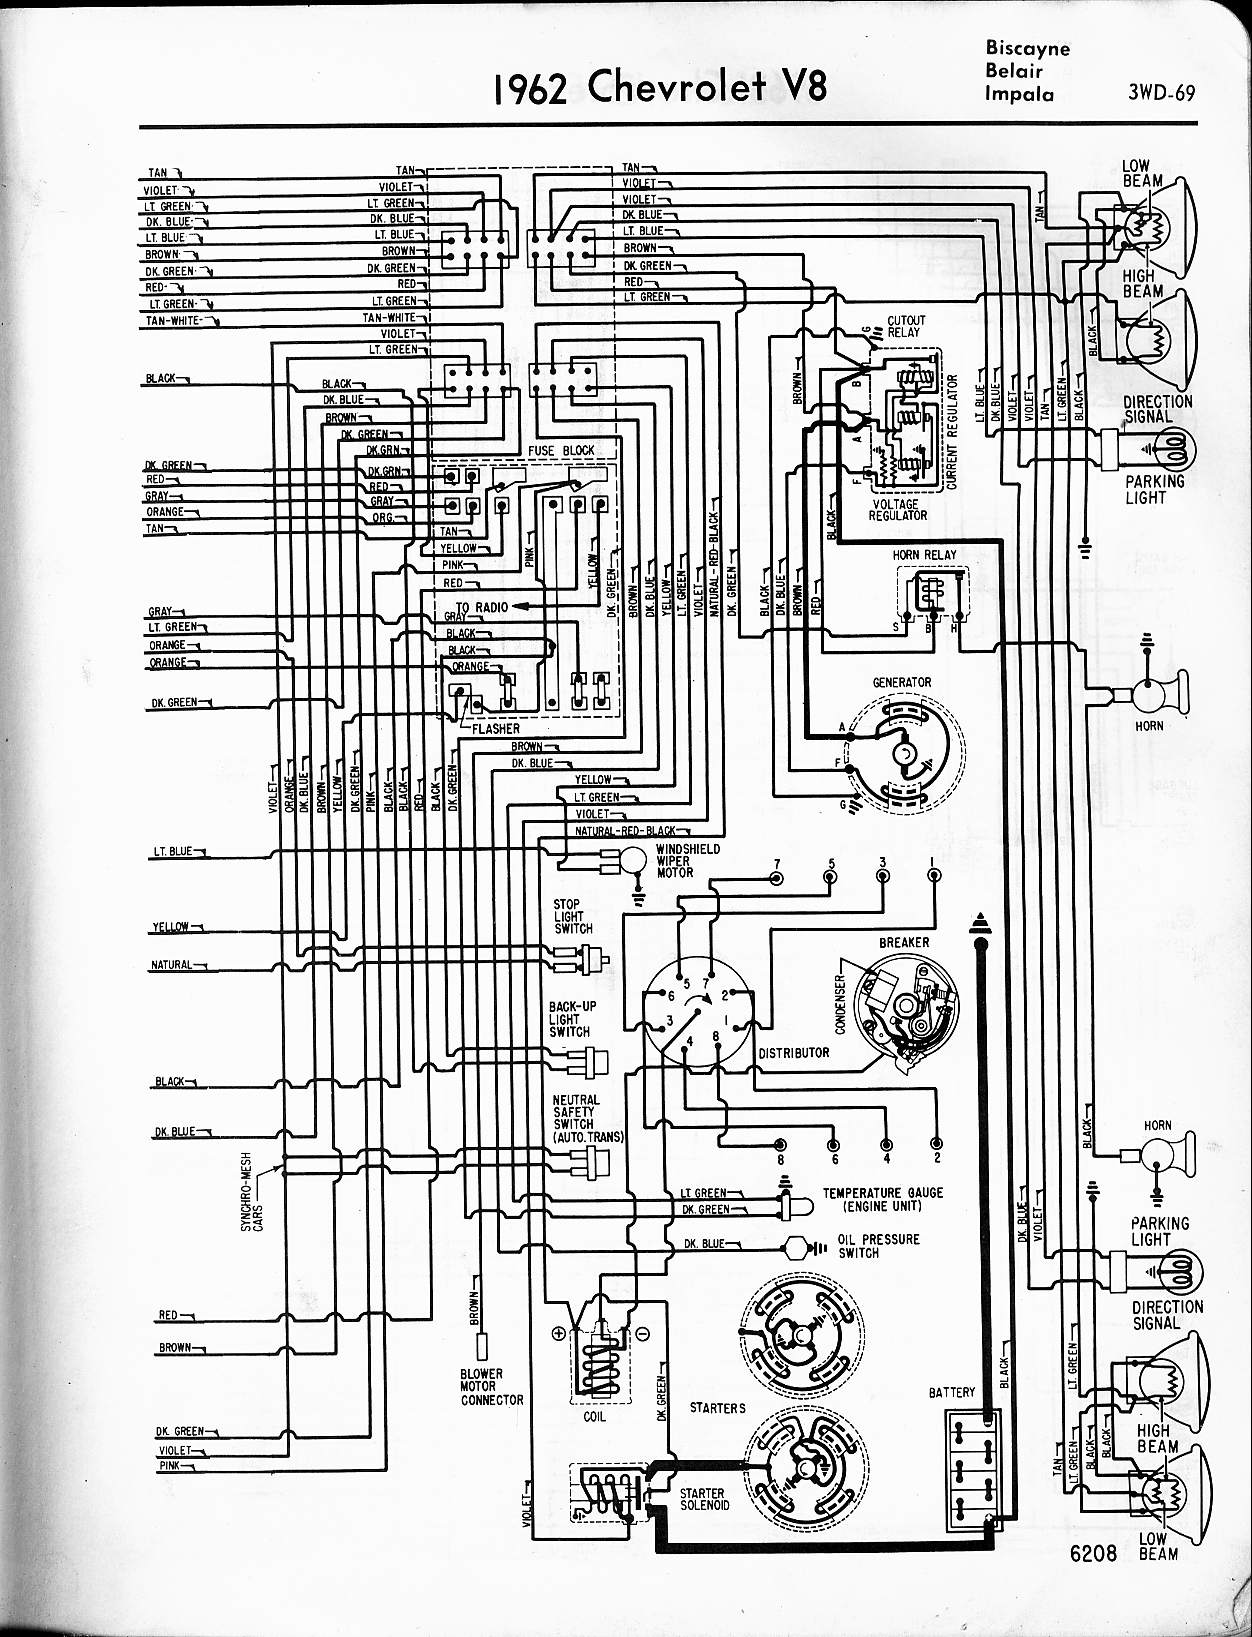 68 corvair wiring diagram 68 triumph wiring diagram